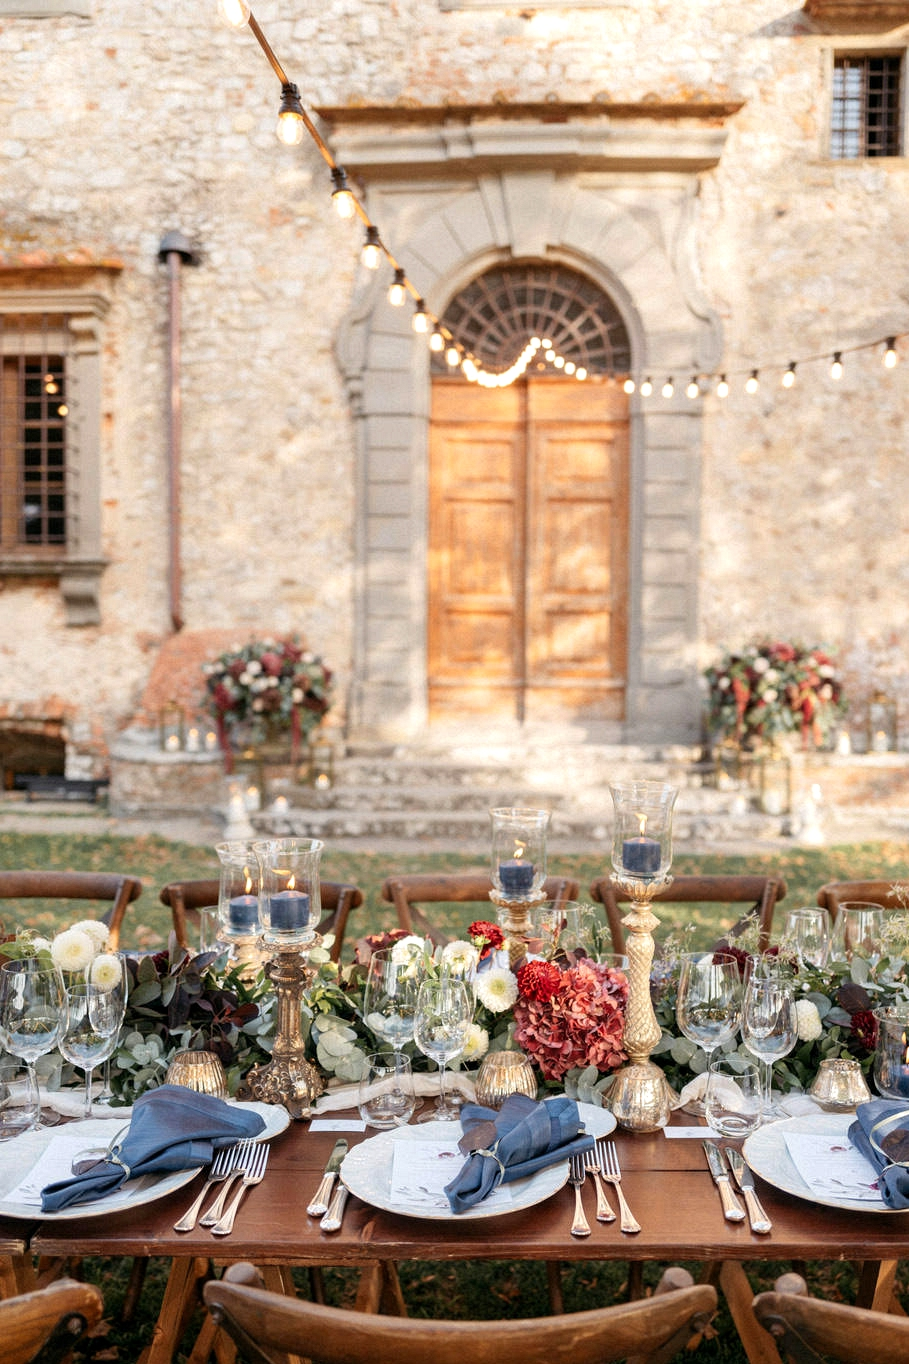 Wedding with 40 Guests in Italy